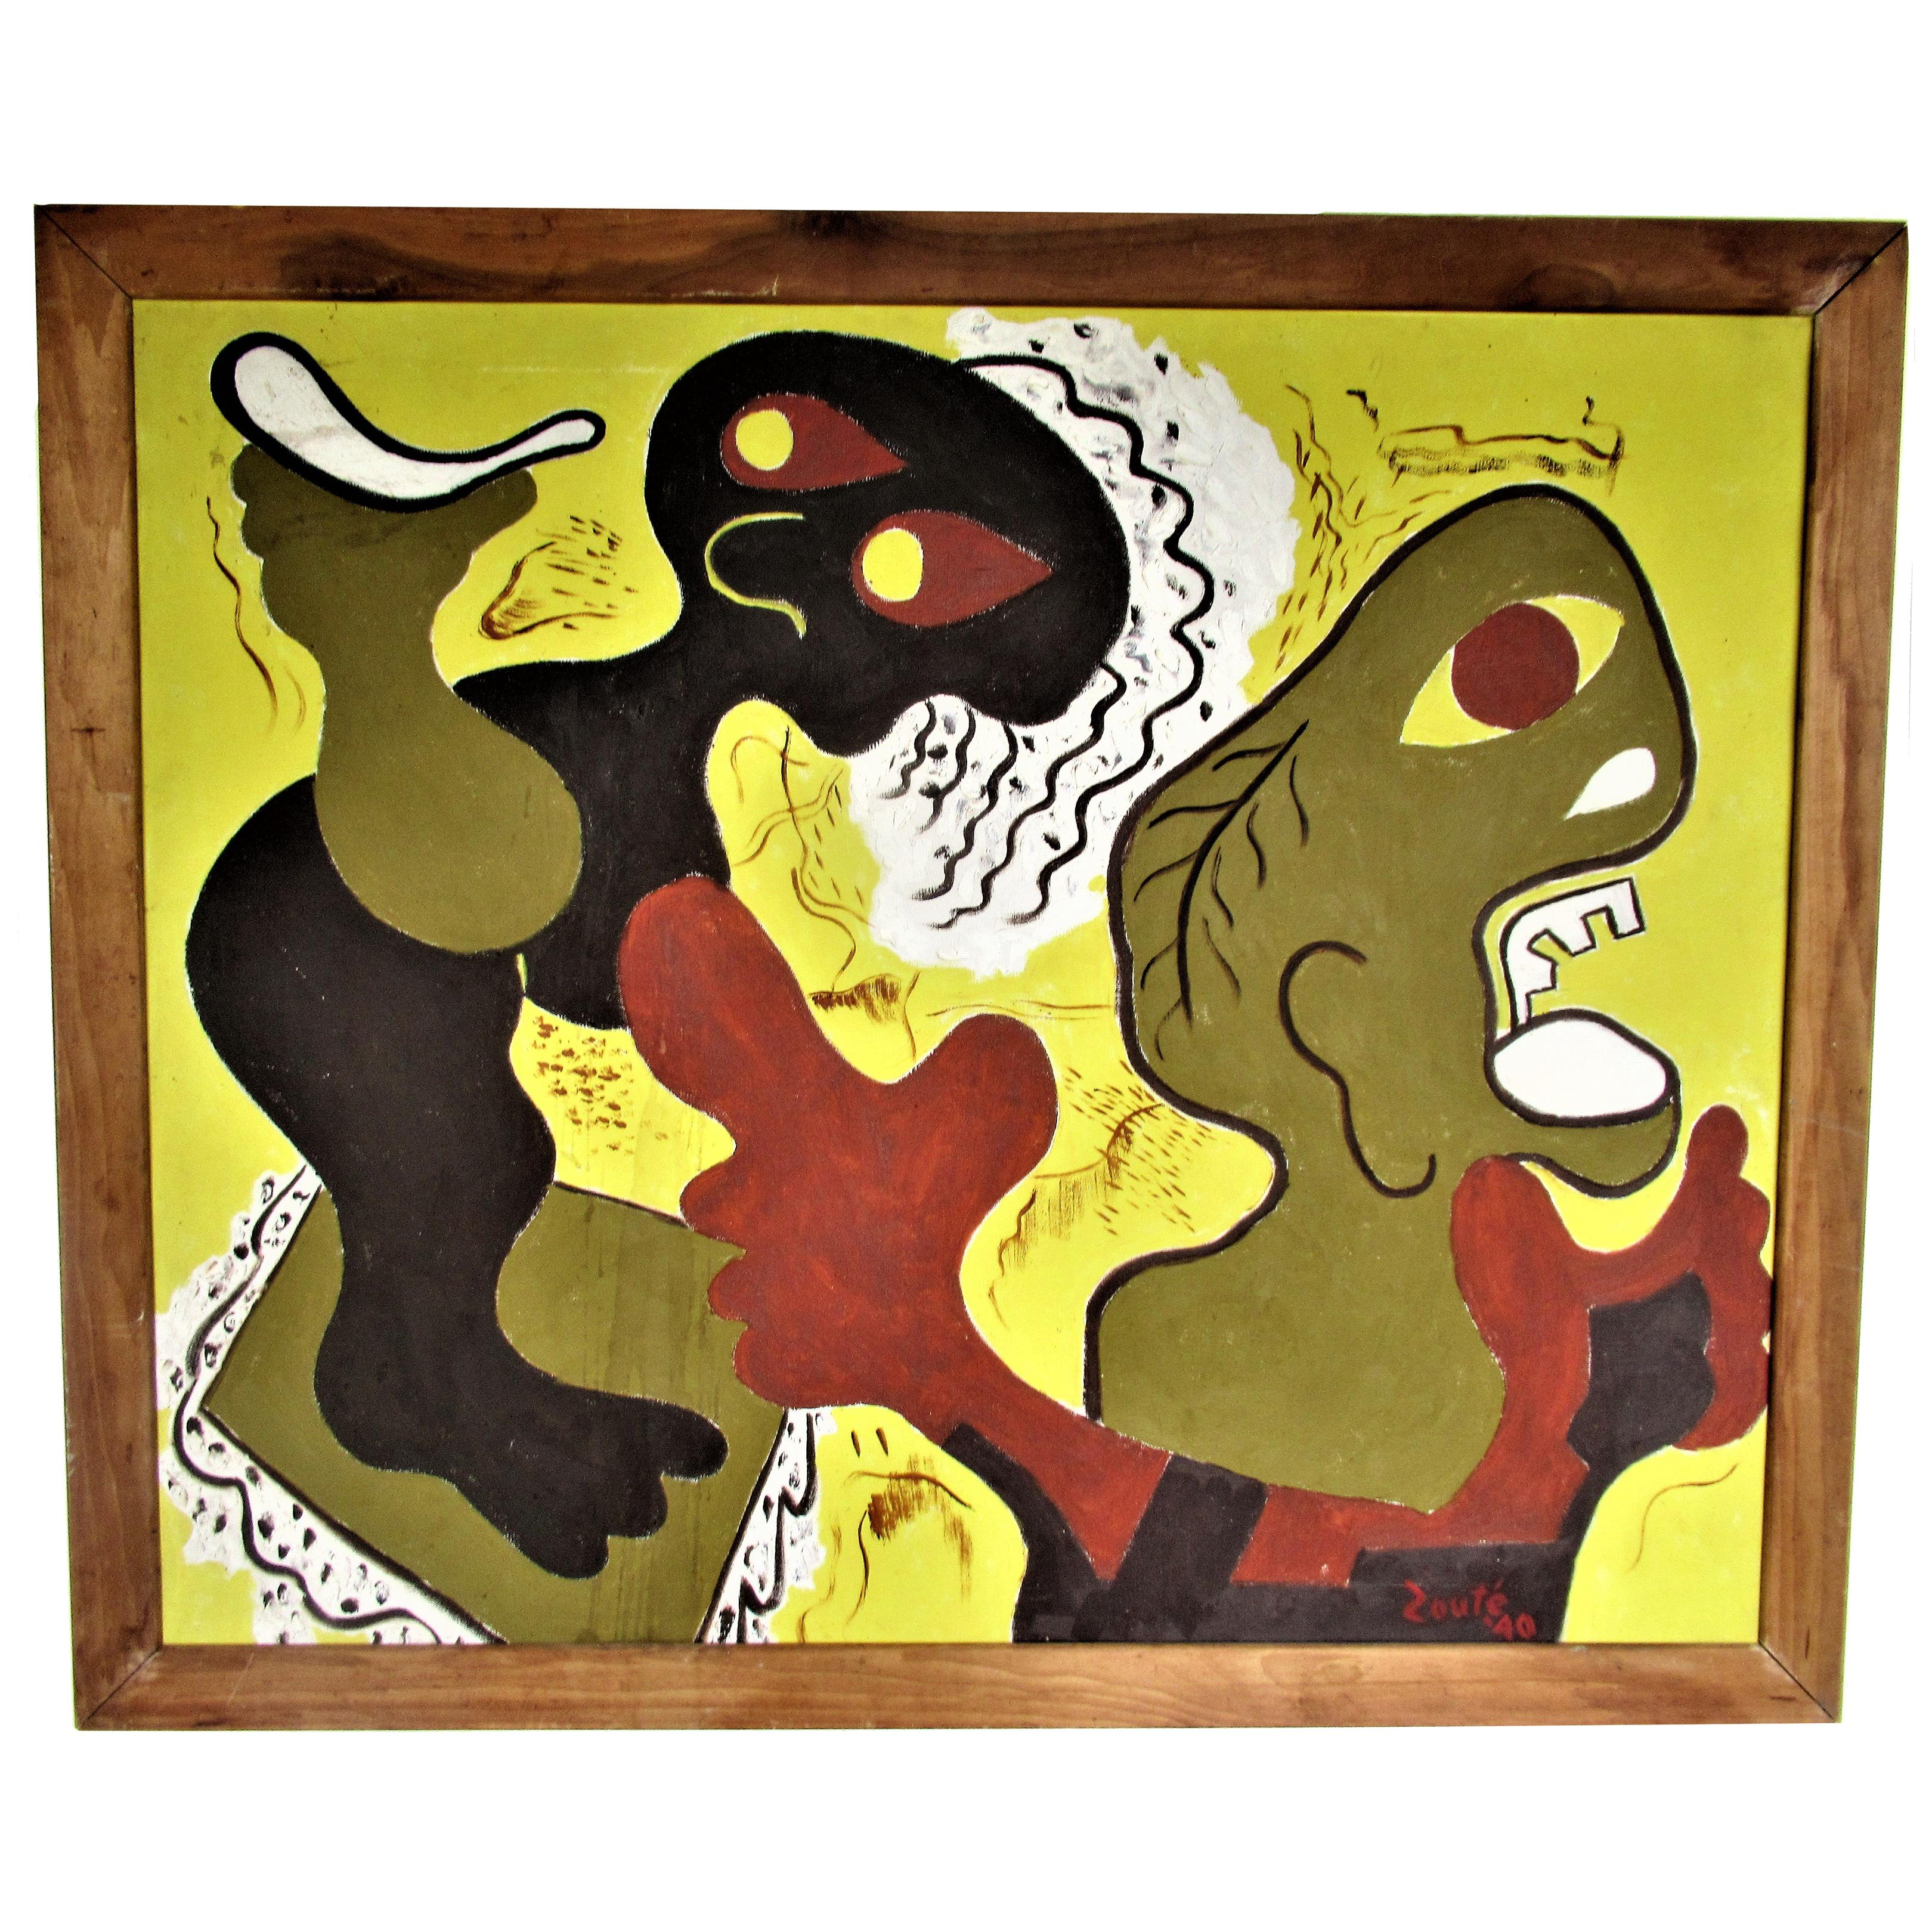 American Modernist Painting by Zoute, 1940